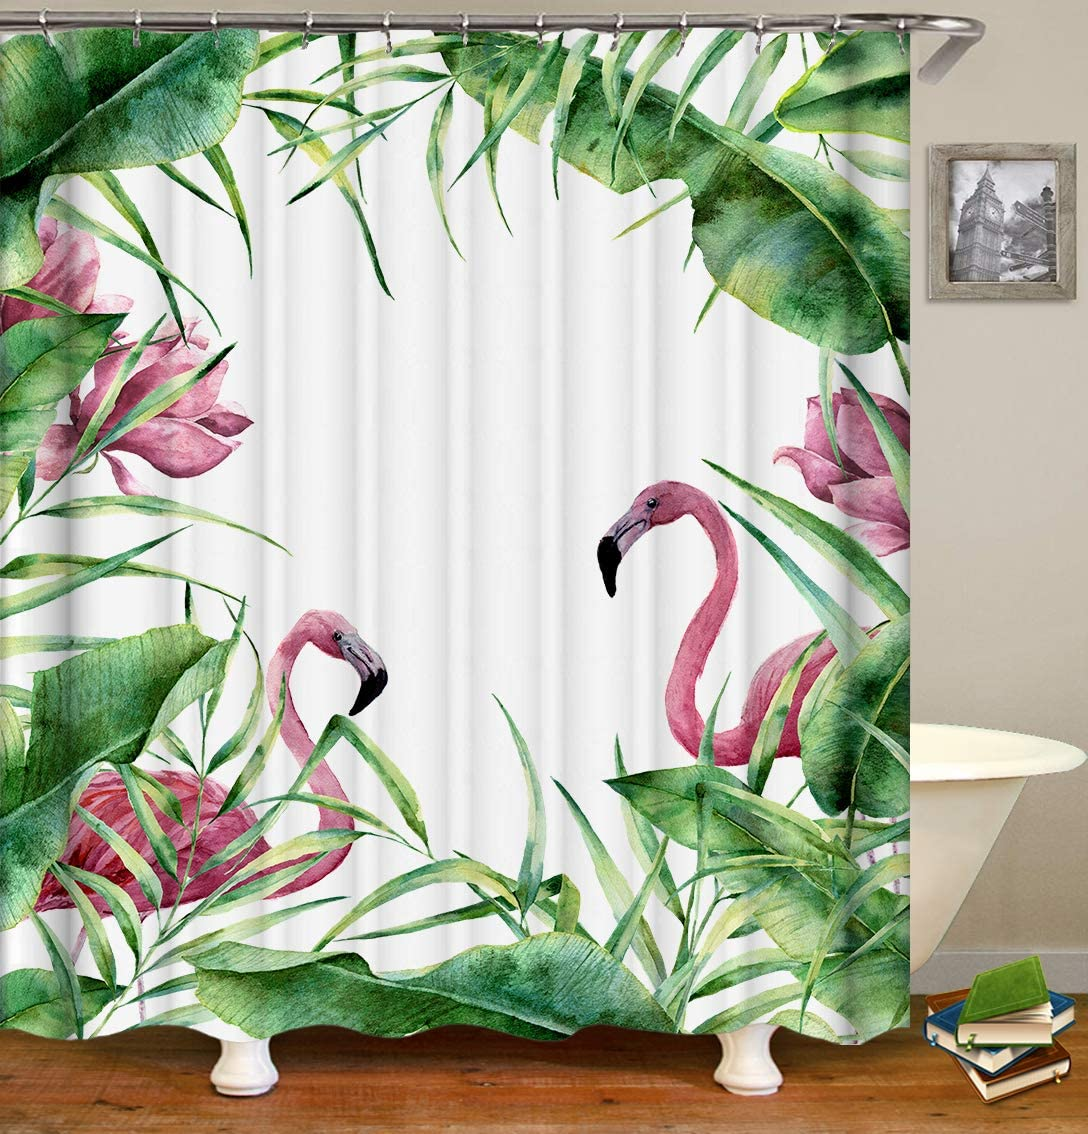 OCCIGANT Home Decor Waterproof Polyester Shower Curtain,Creative Colorful Tree with 3D Printing,Fabric Bathroom Set with Hooks,Multi